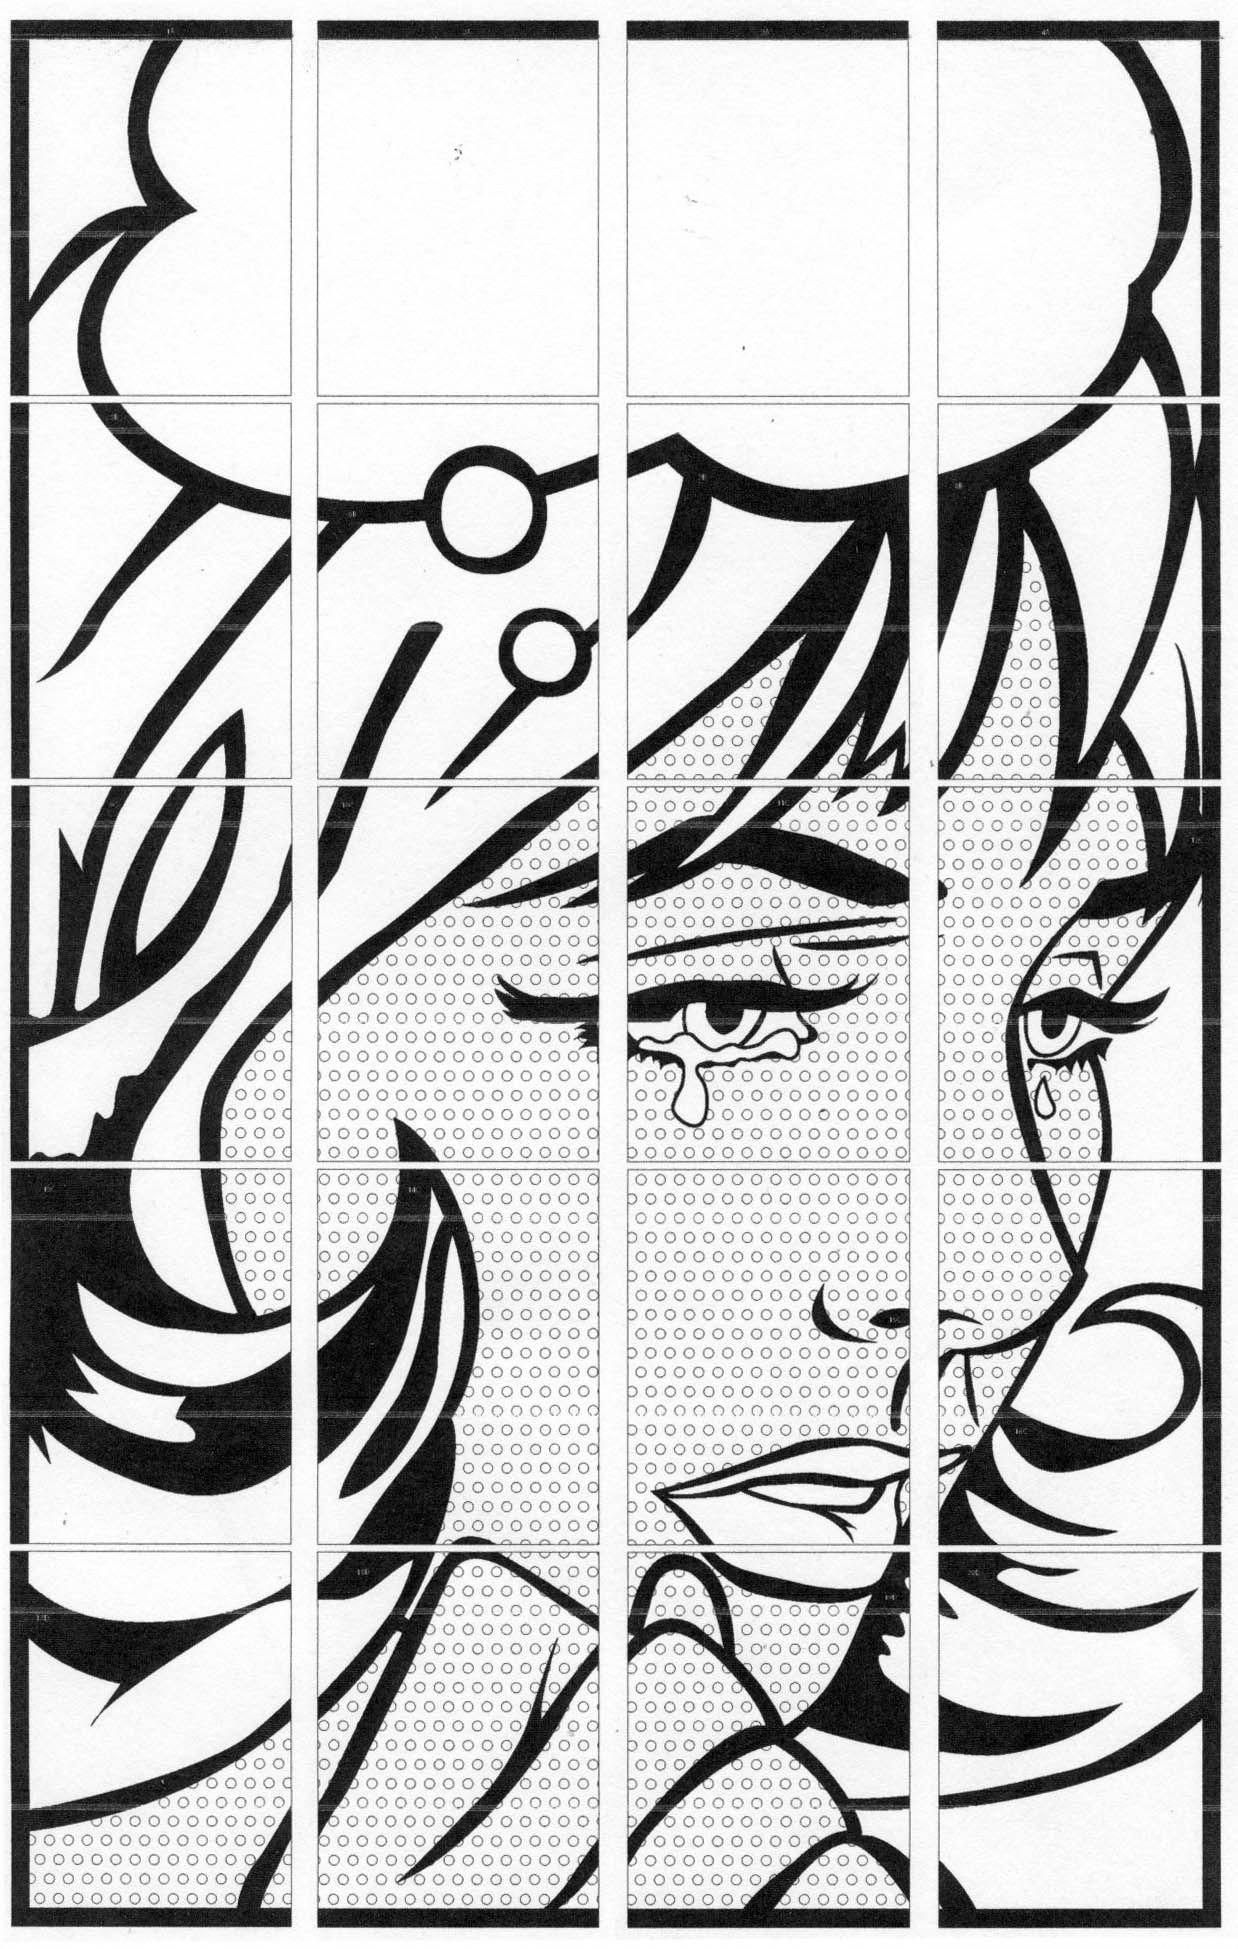 Comic Book Pop Art Mural With Images